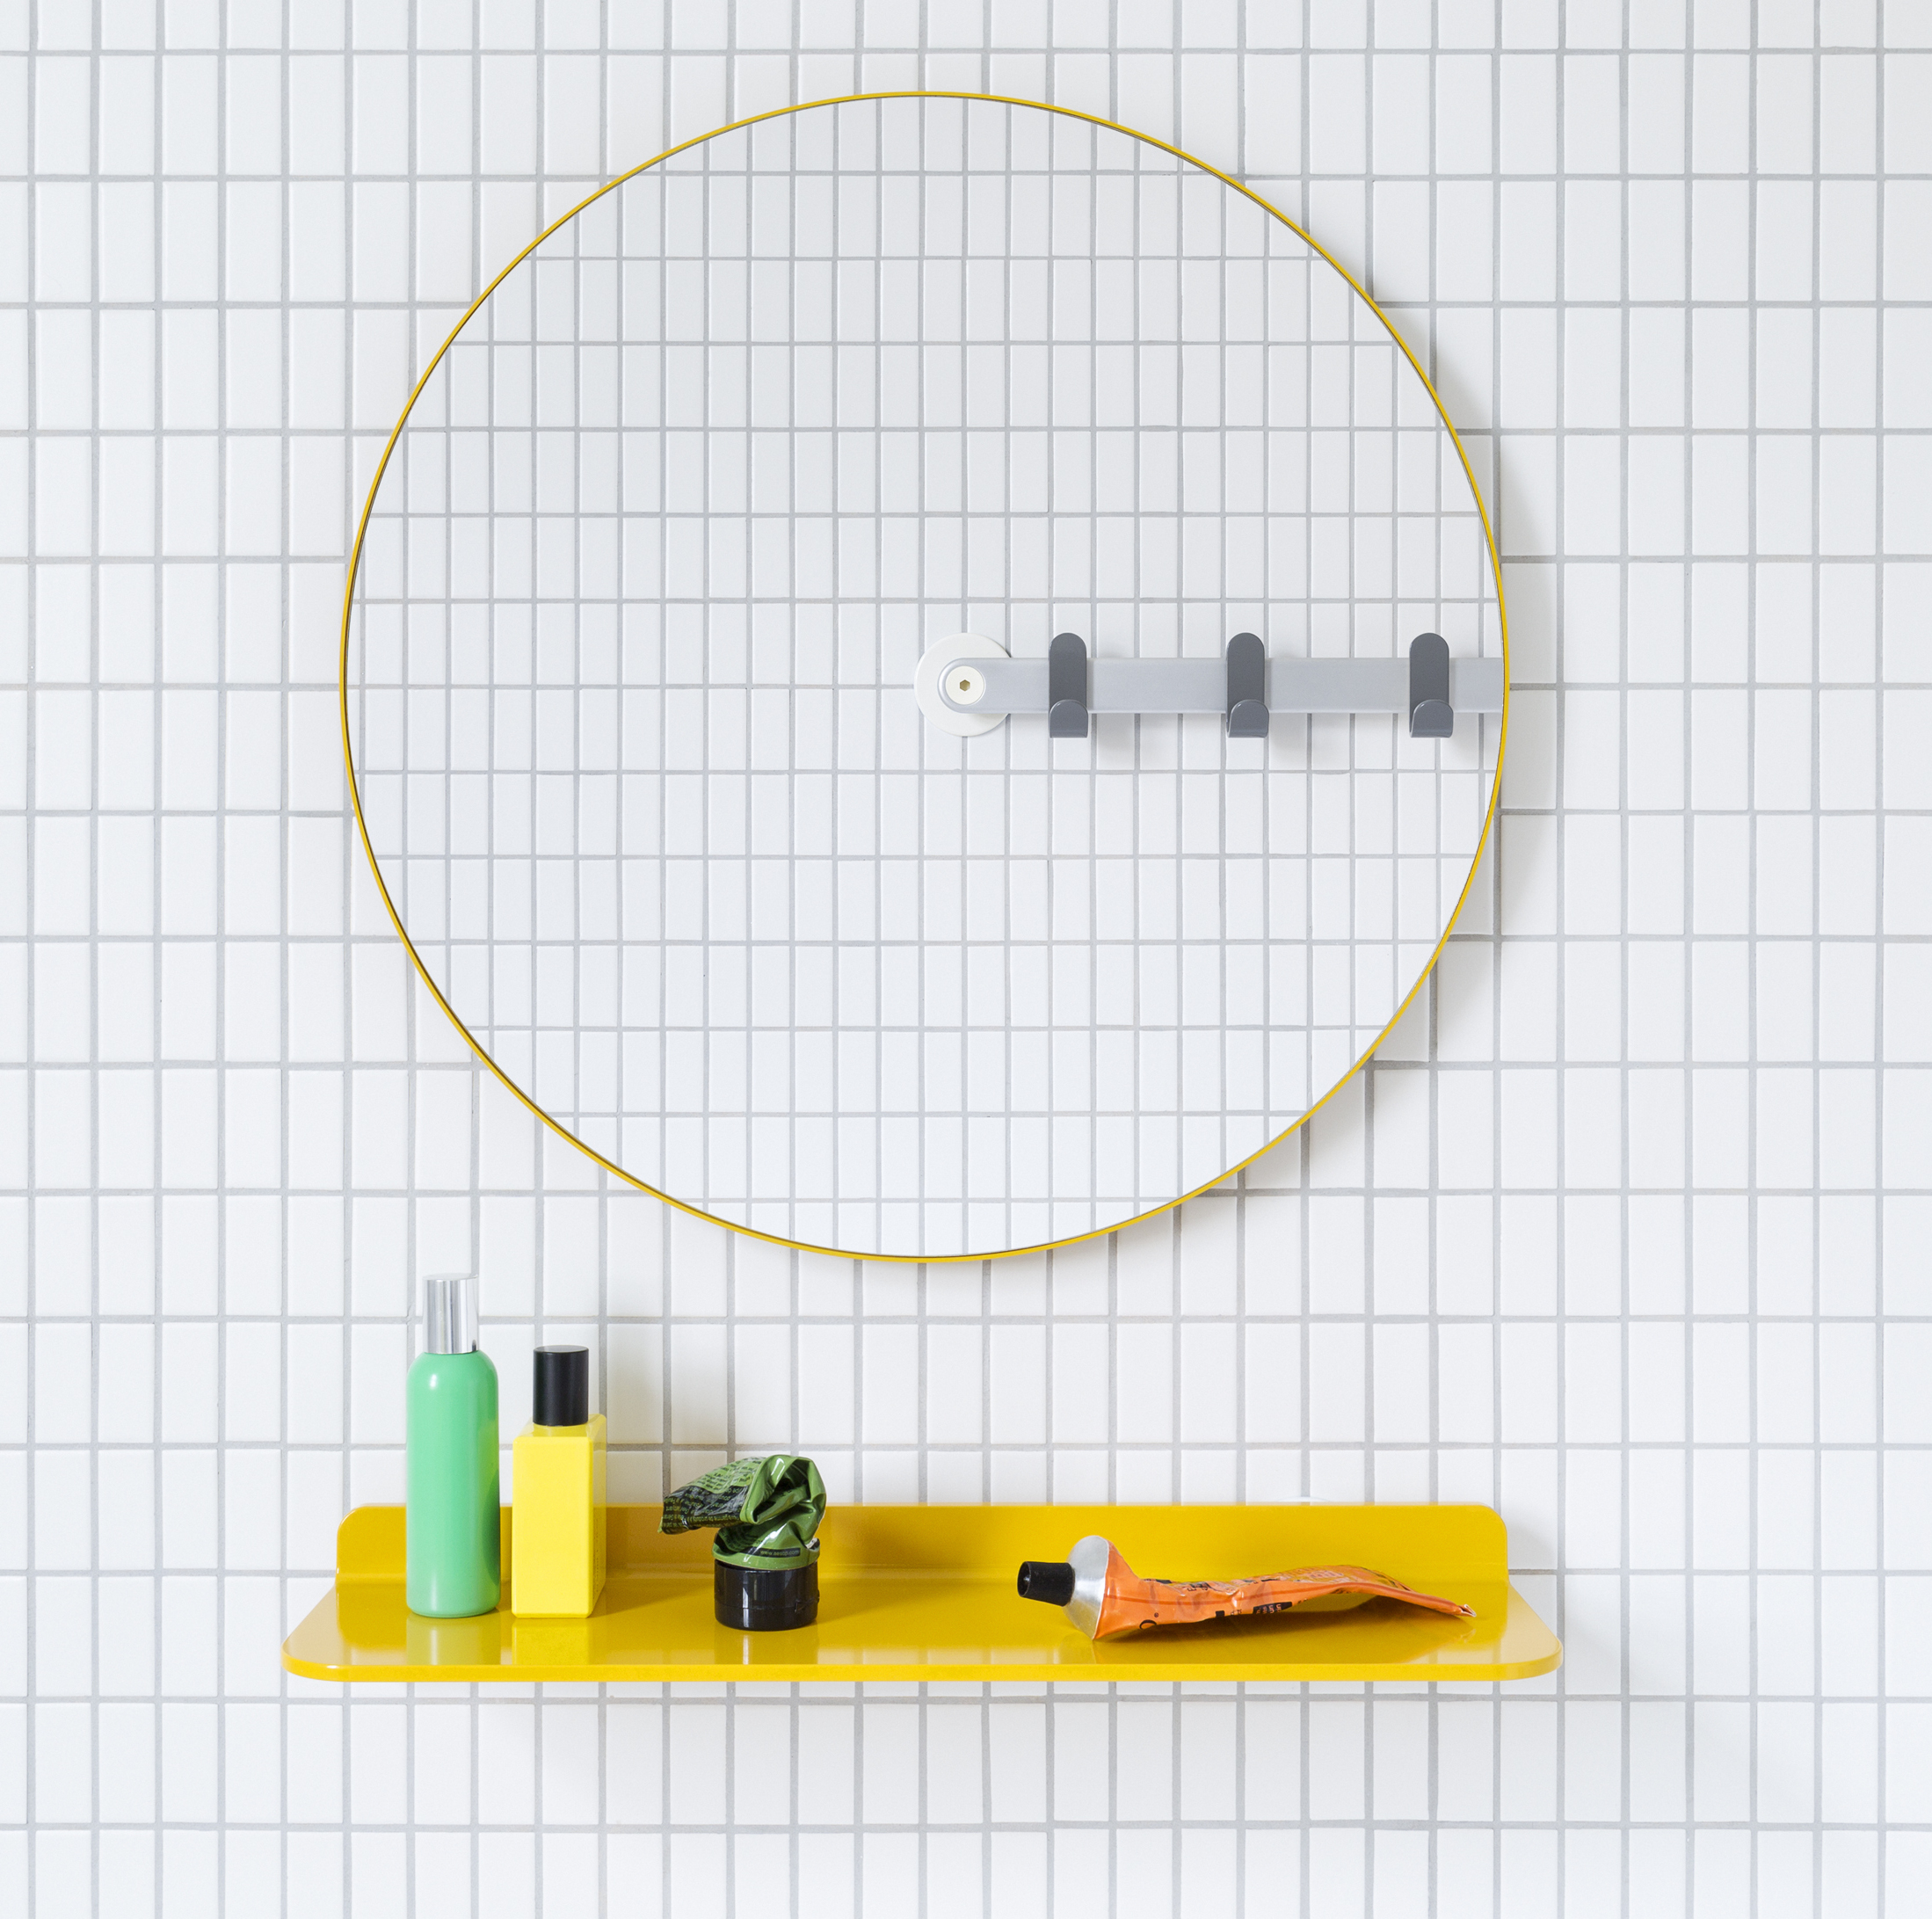 Sabi Space mirror and shelf, universal design accessories for the bathroom by MAP Barber Osgerby